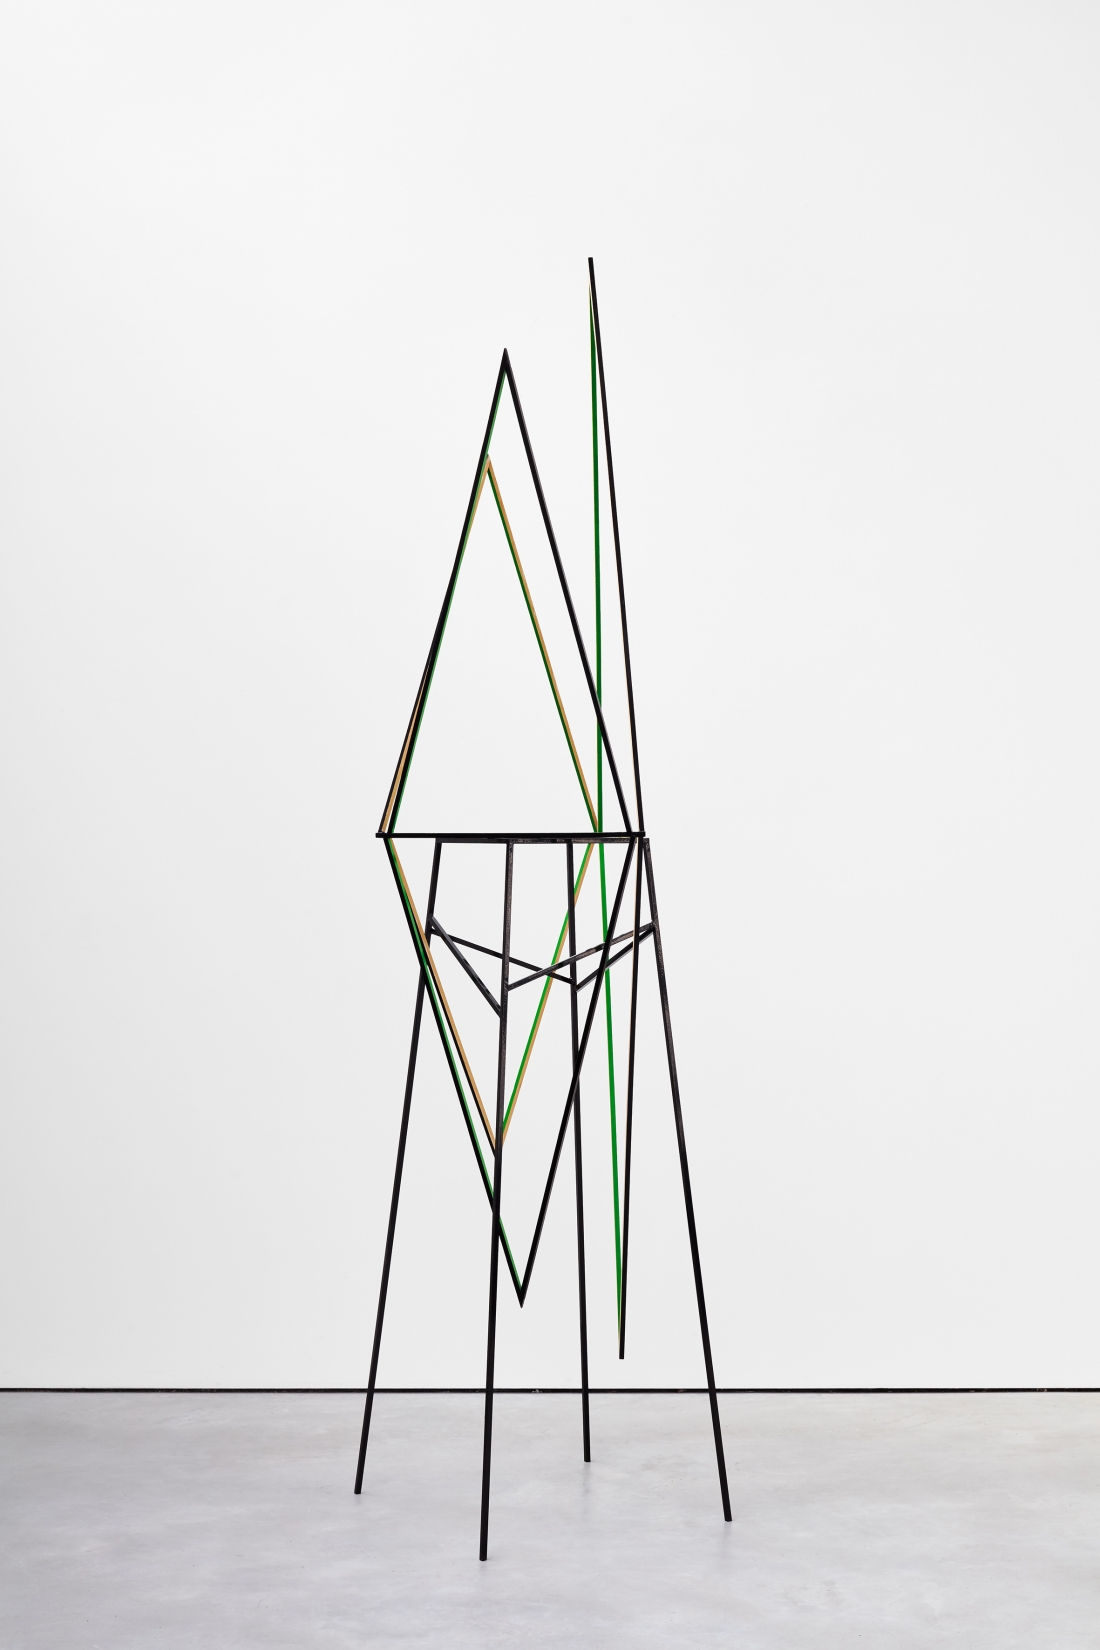 Eva Rothschild Sweet Valley, 2011, Painted oak, steel stand, 243 x 60 x 56 cm, 95 5/8 x 23 5/8 x 22 1/8 ins, Copyright the artist, courtesy Stuart Shave/Modern Art, London